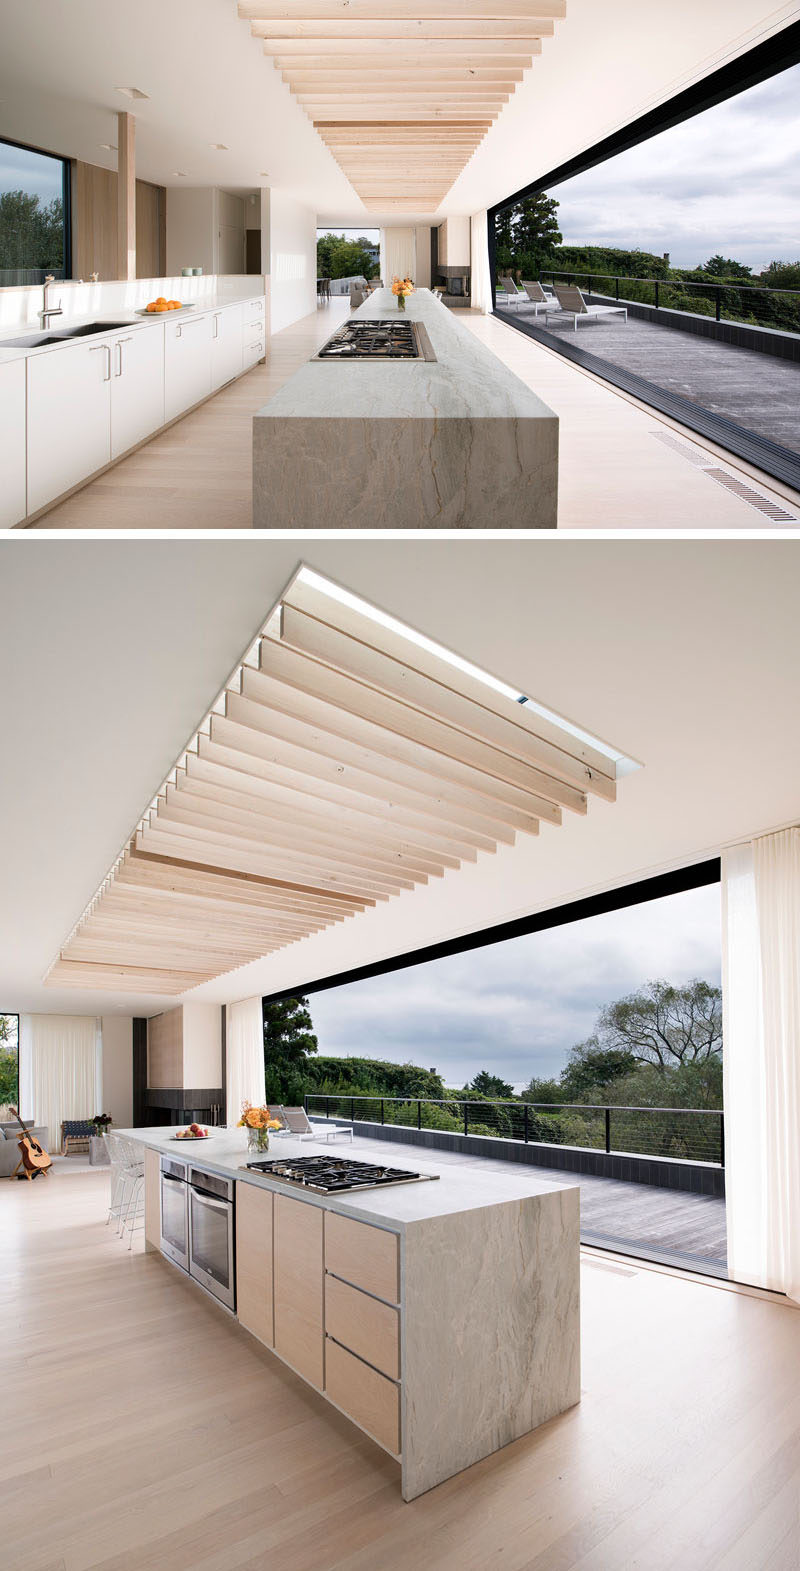 Inside this modern house, oak louvers on canvas hinges under an oversized skylight have the ability to sway in the ocean breezes, casting dynamic patterns of light and providing cooling shade, much like a tree's canopy. #ModernKitchen #Louvers #Skylight